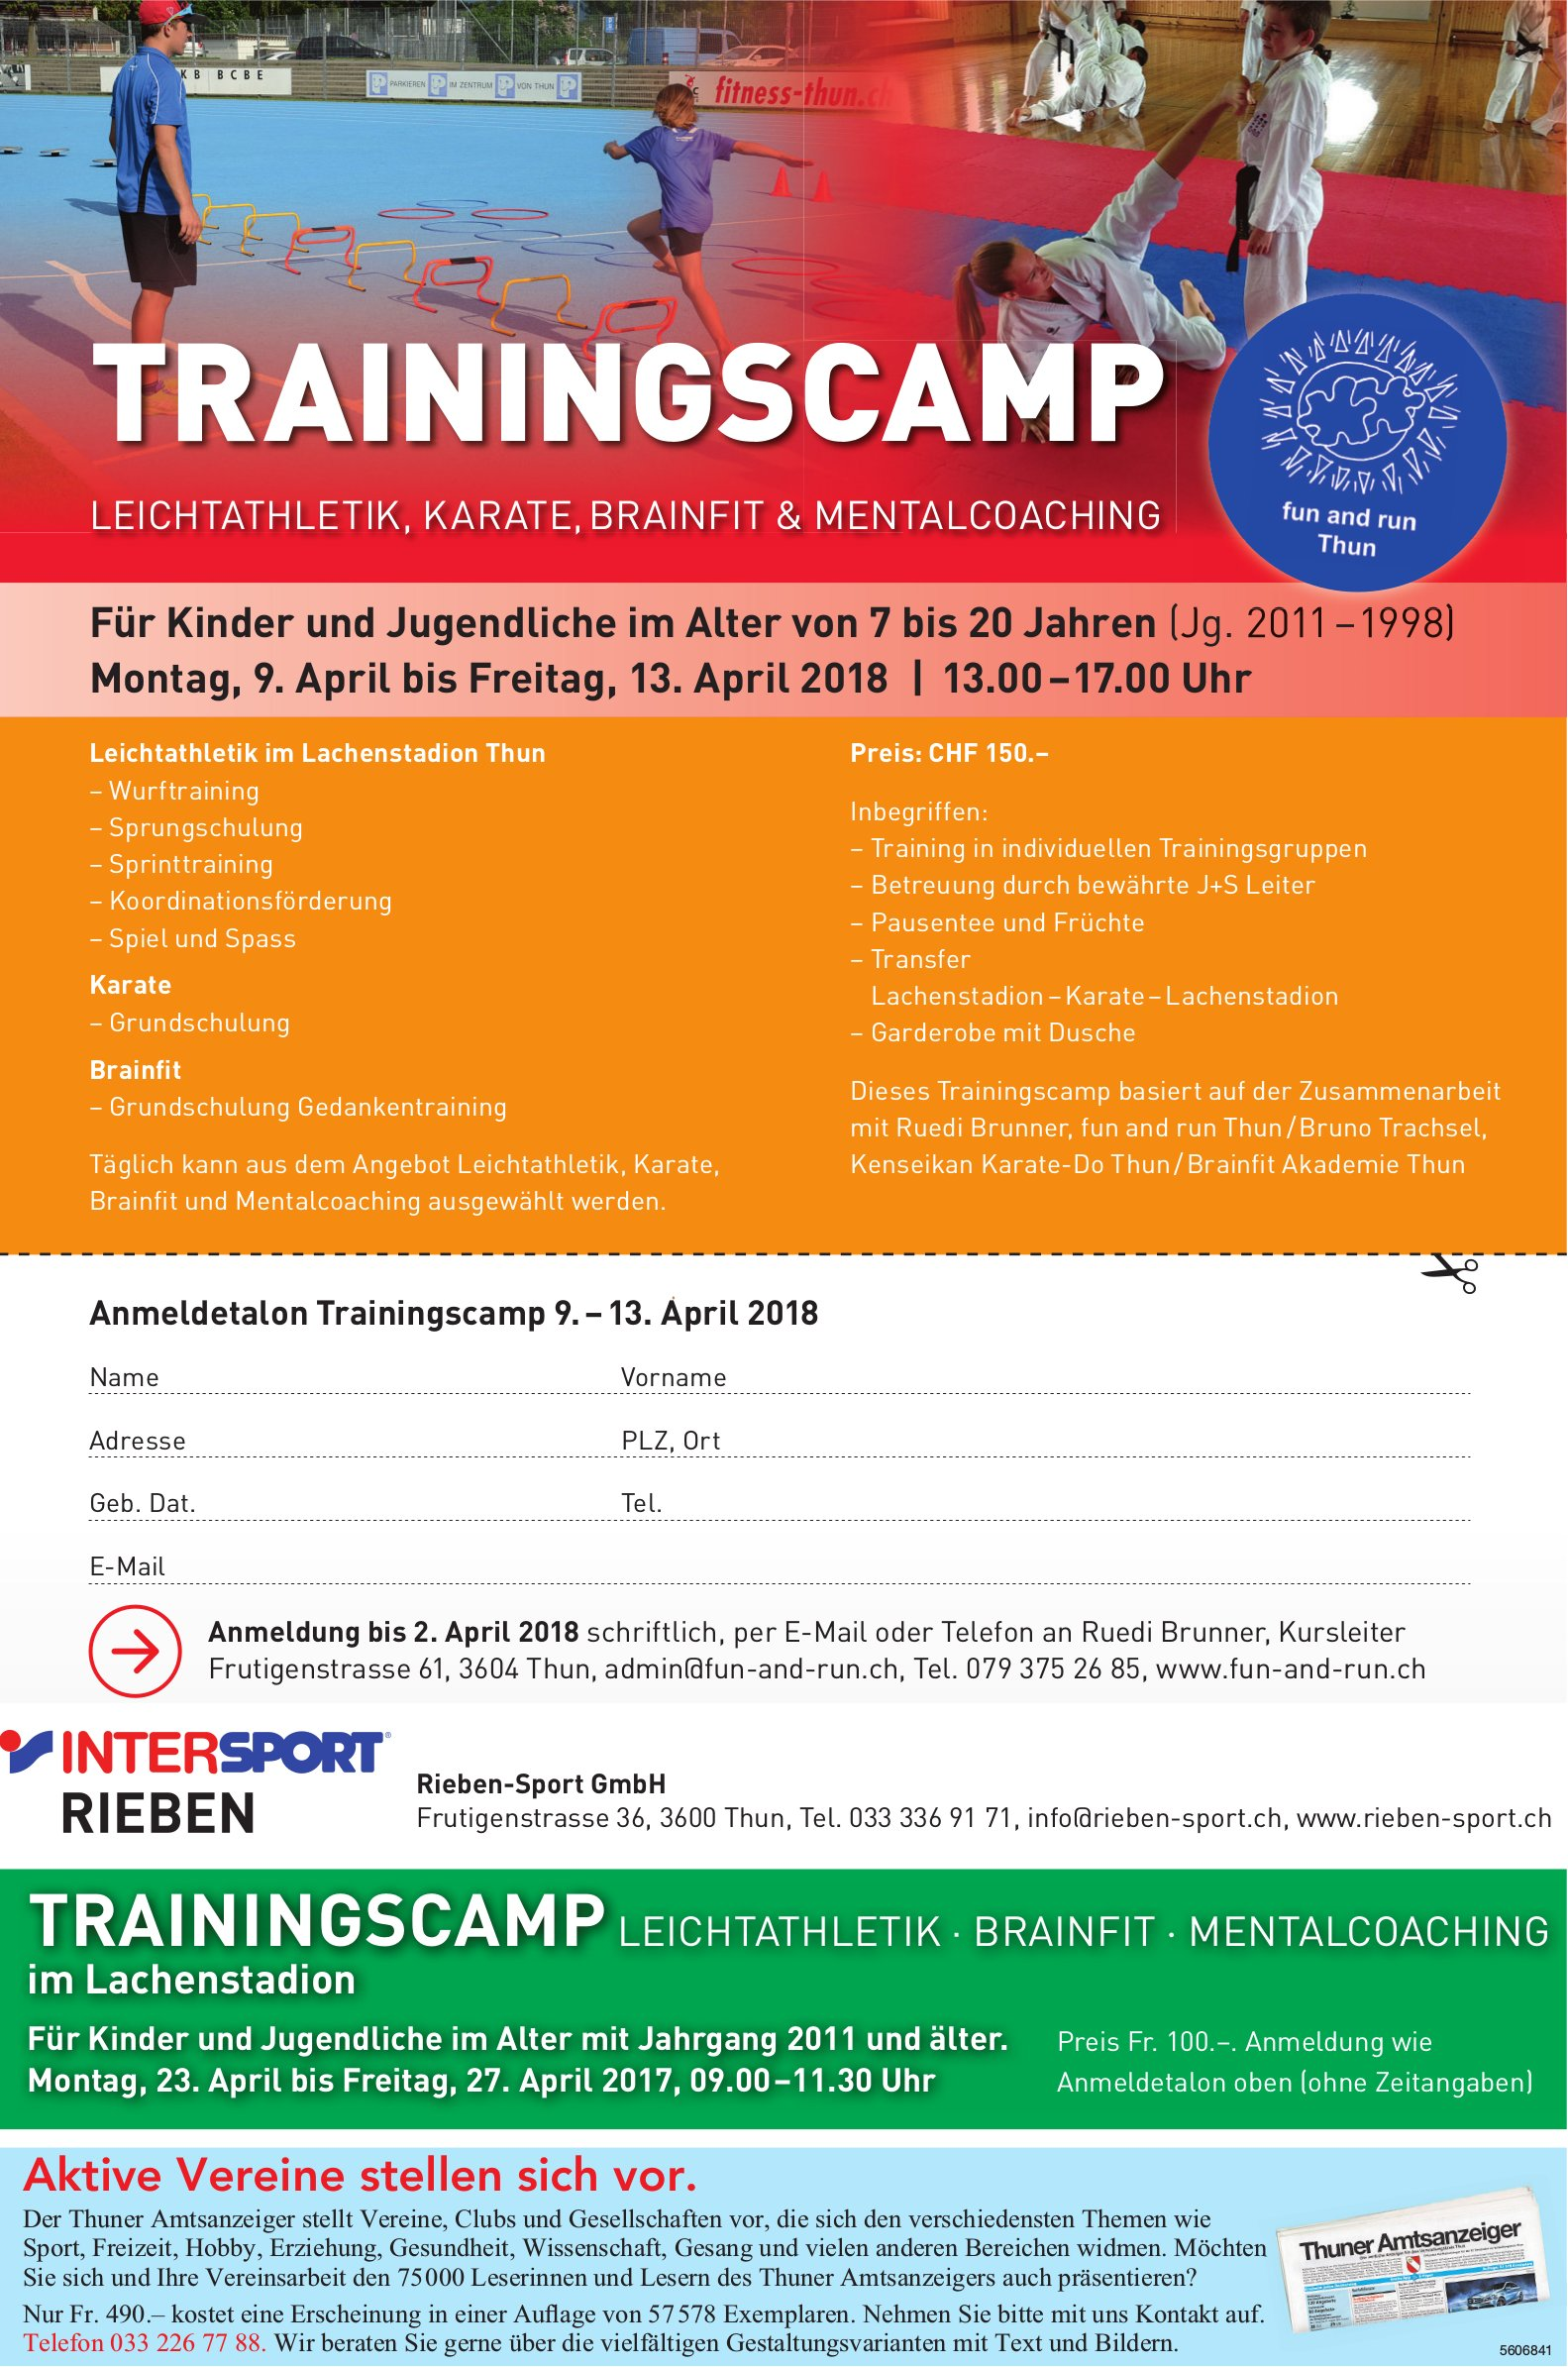 TRAININGSCAMP LEICHTATHLETIK · BRAINFIT · MENTALCOACHING im Lachenstadion, 9.-13. April